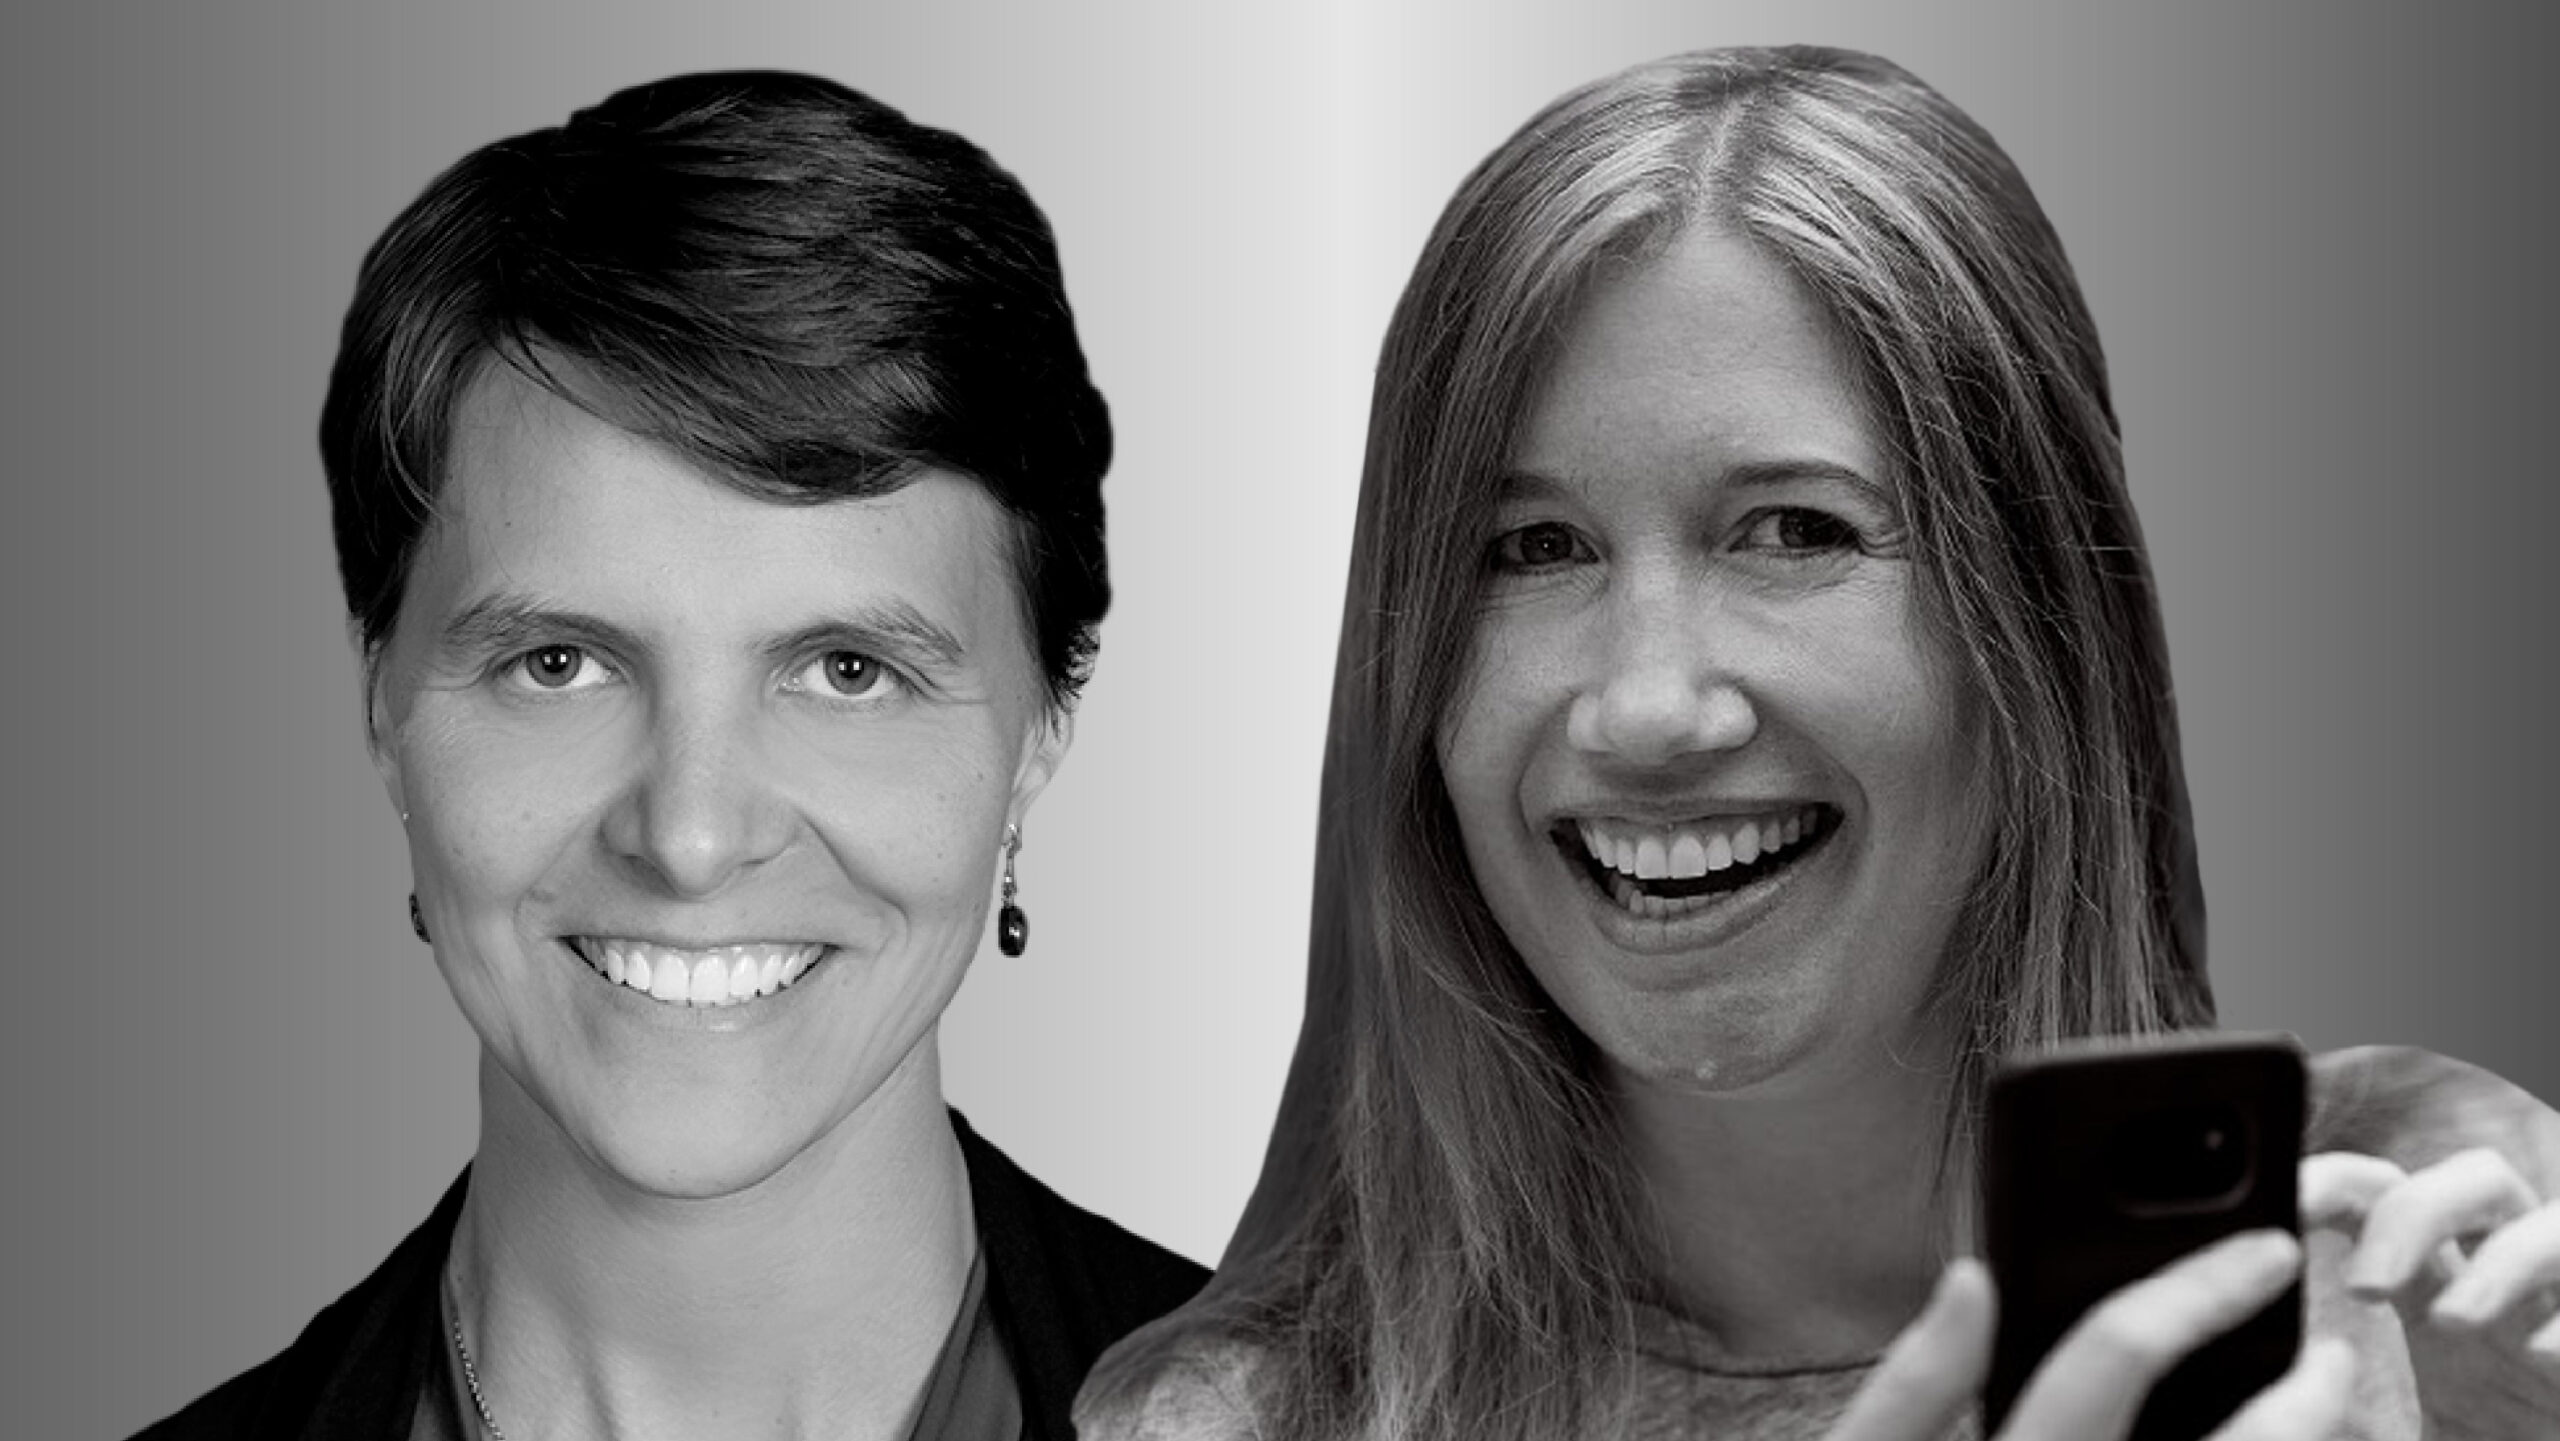 Two women side by side, Sonia Jaffe on the left and Jaime Teevan on the right, in black and white smile and look forward. Teevan is holding a cell phone.